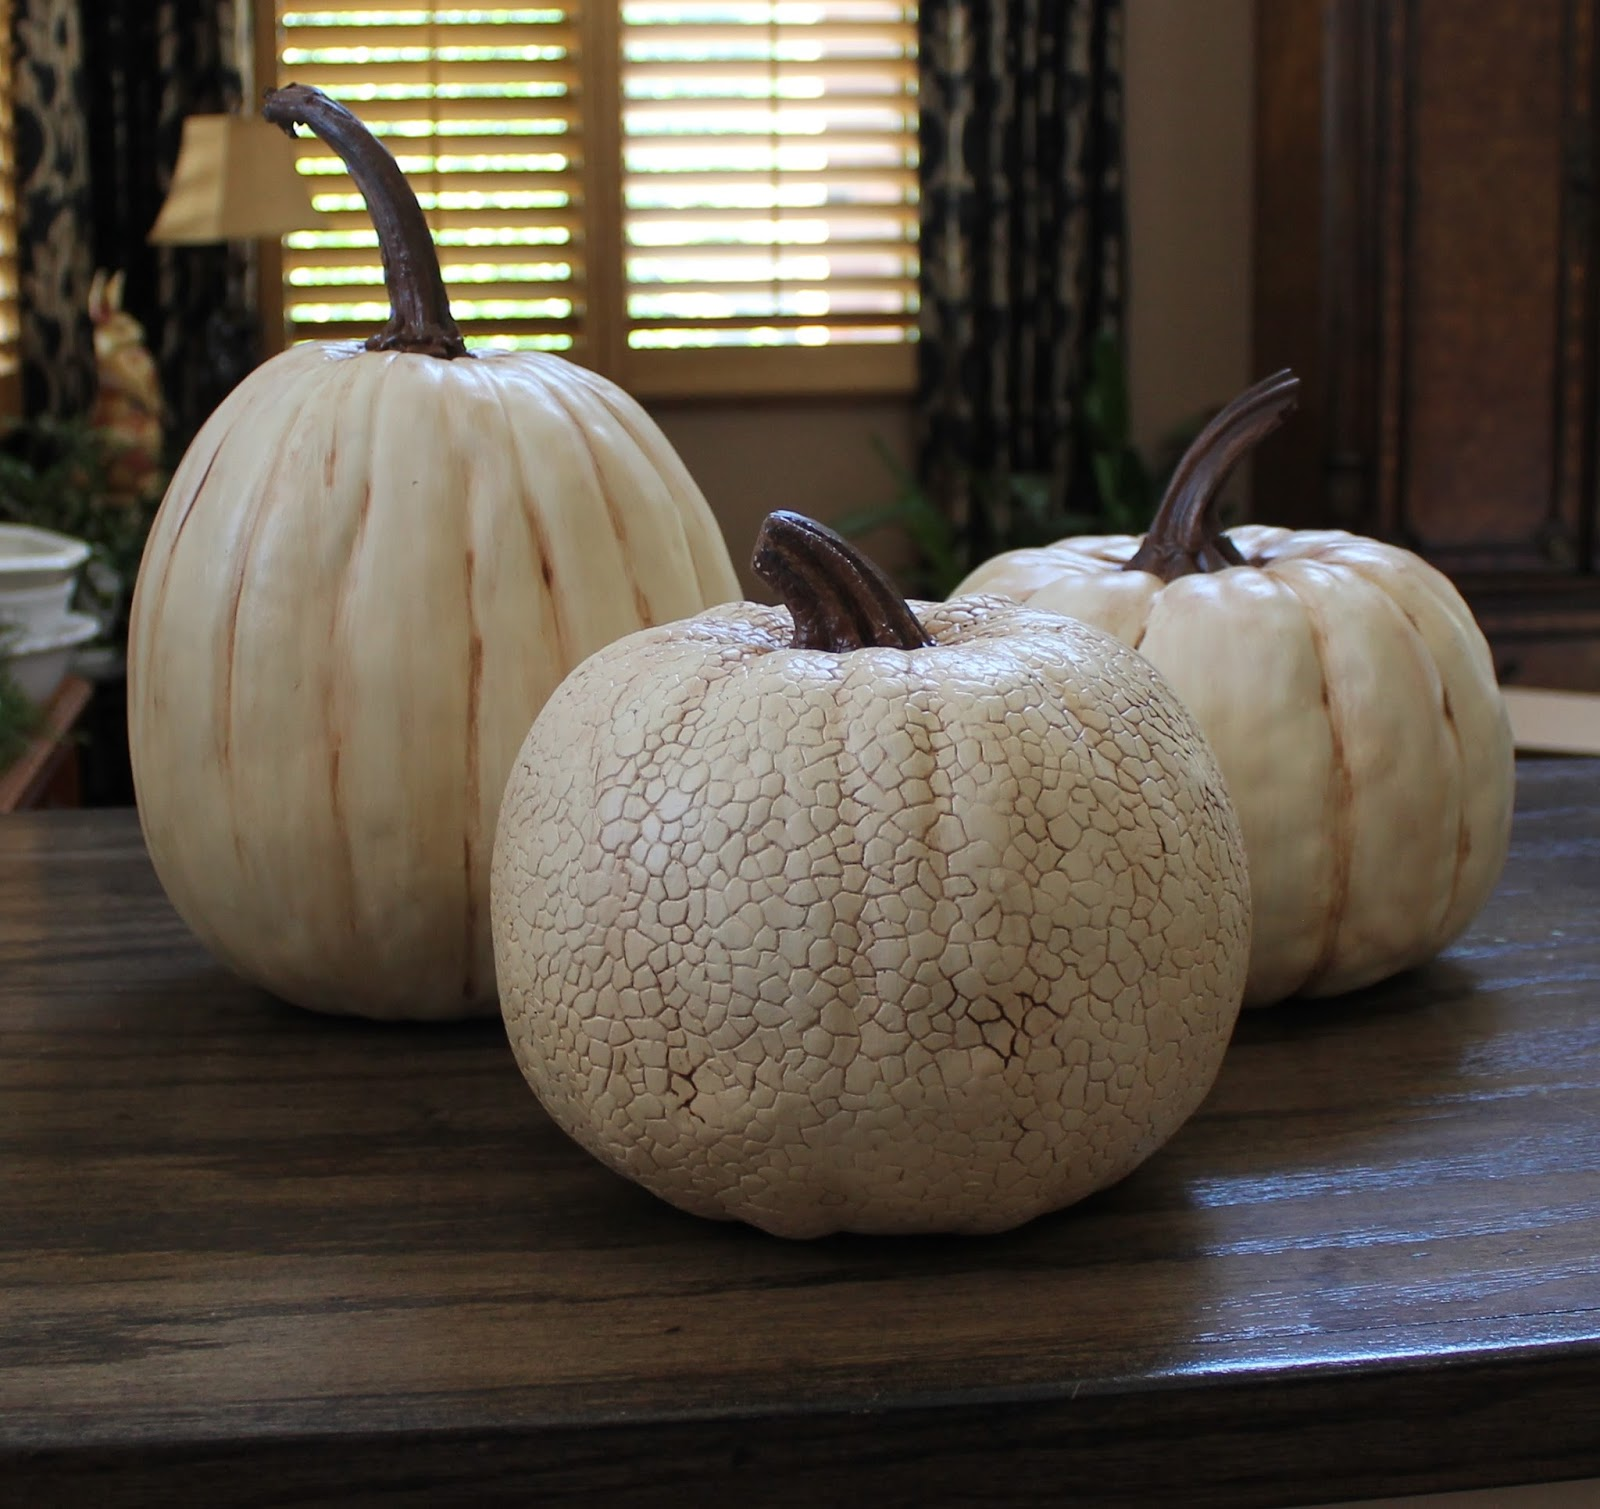 Southern Seazons: It's pumpkin painting time